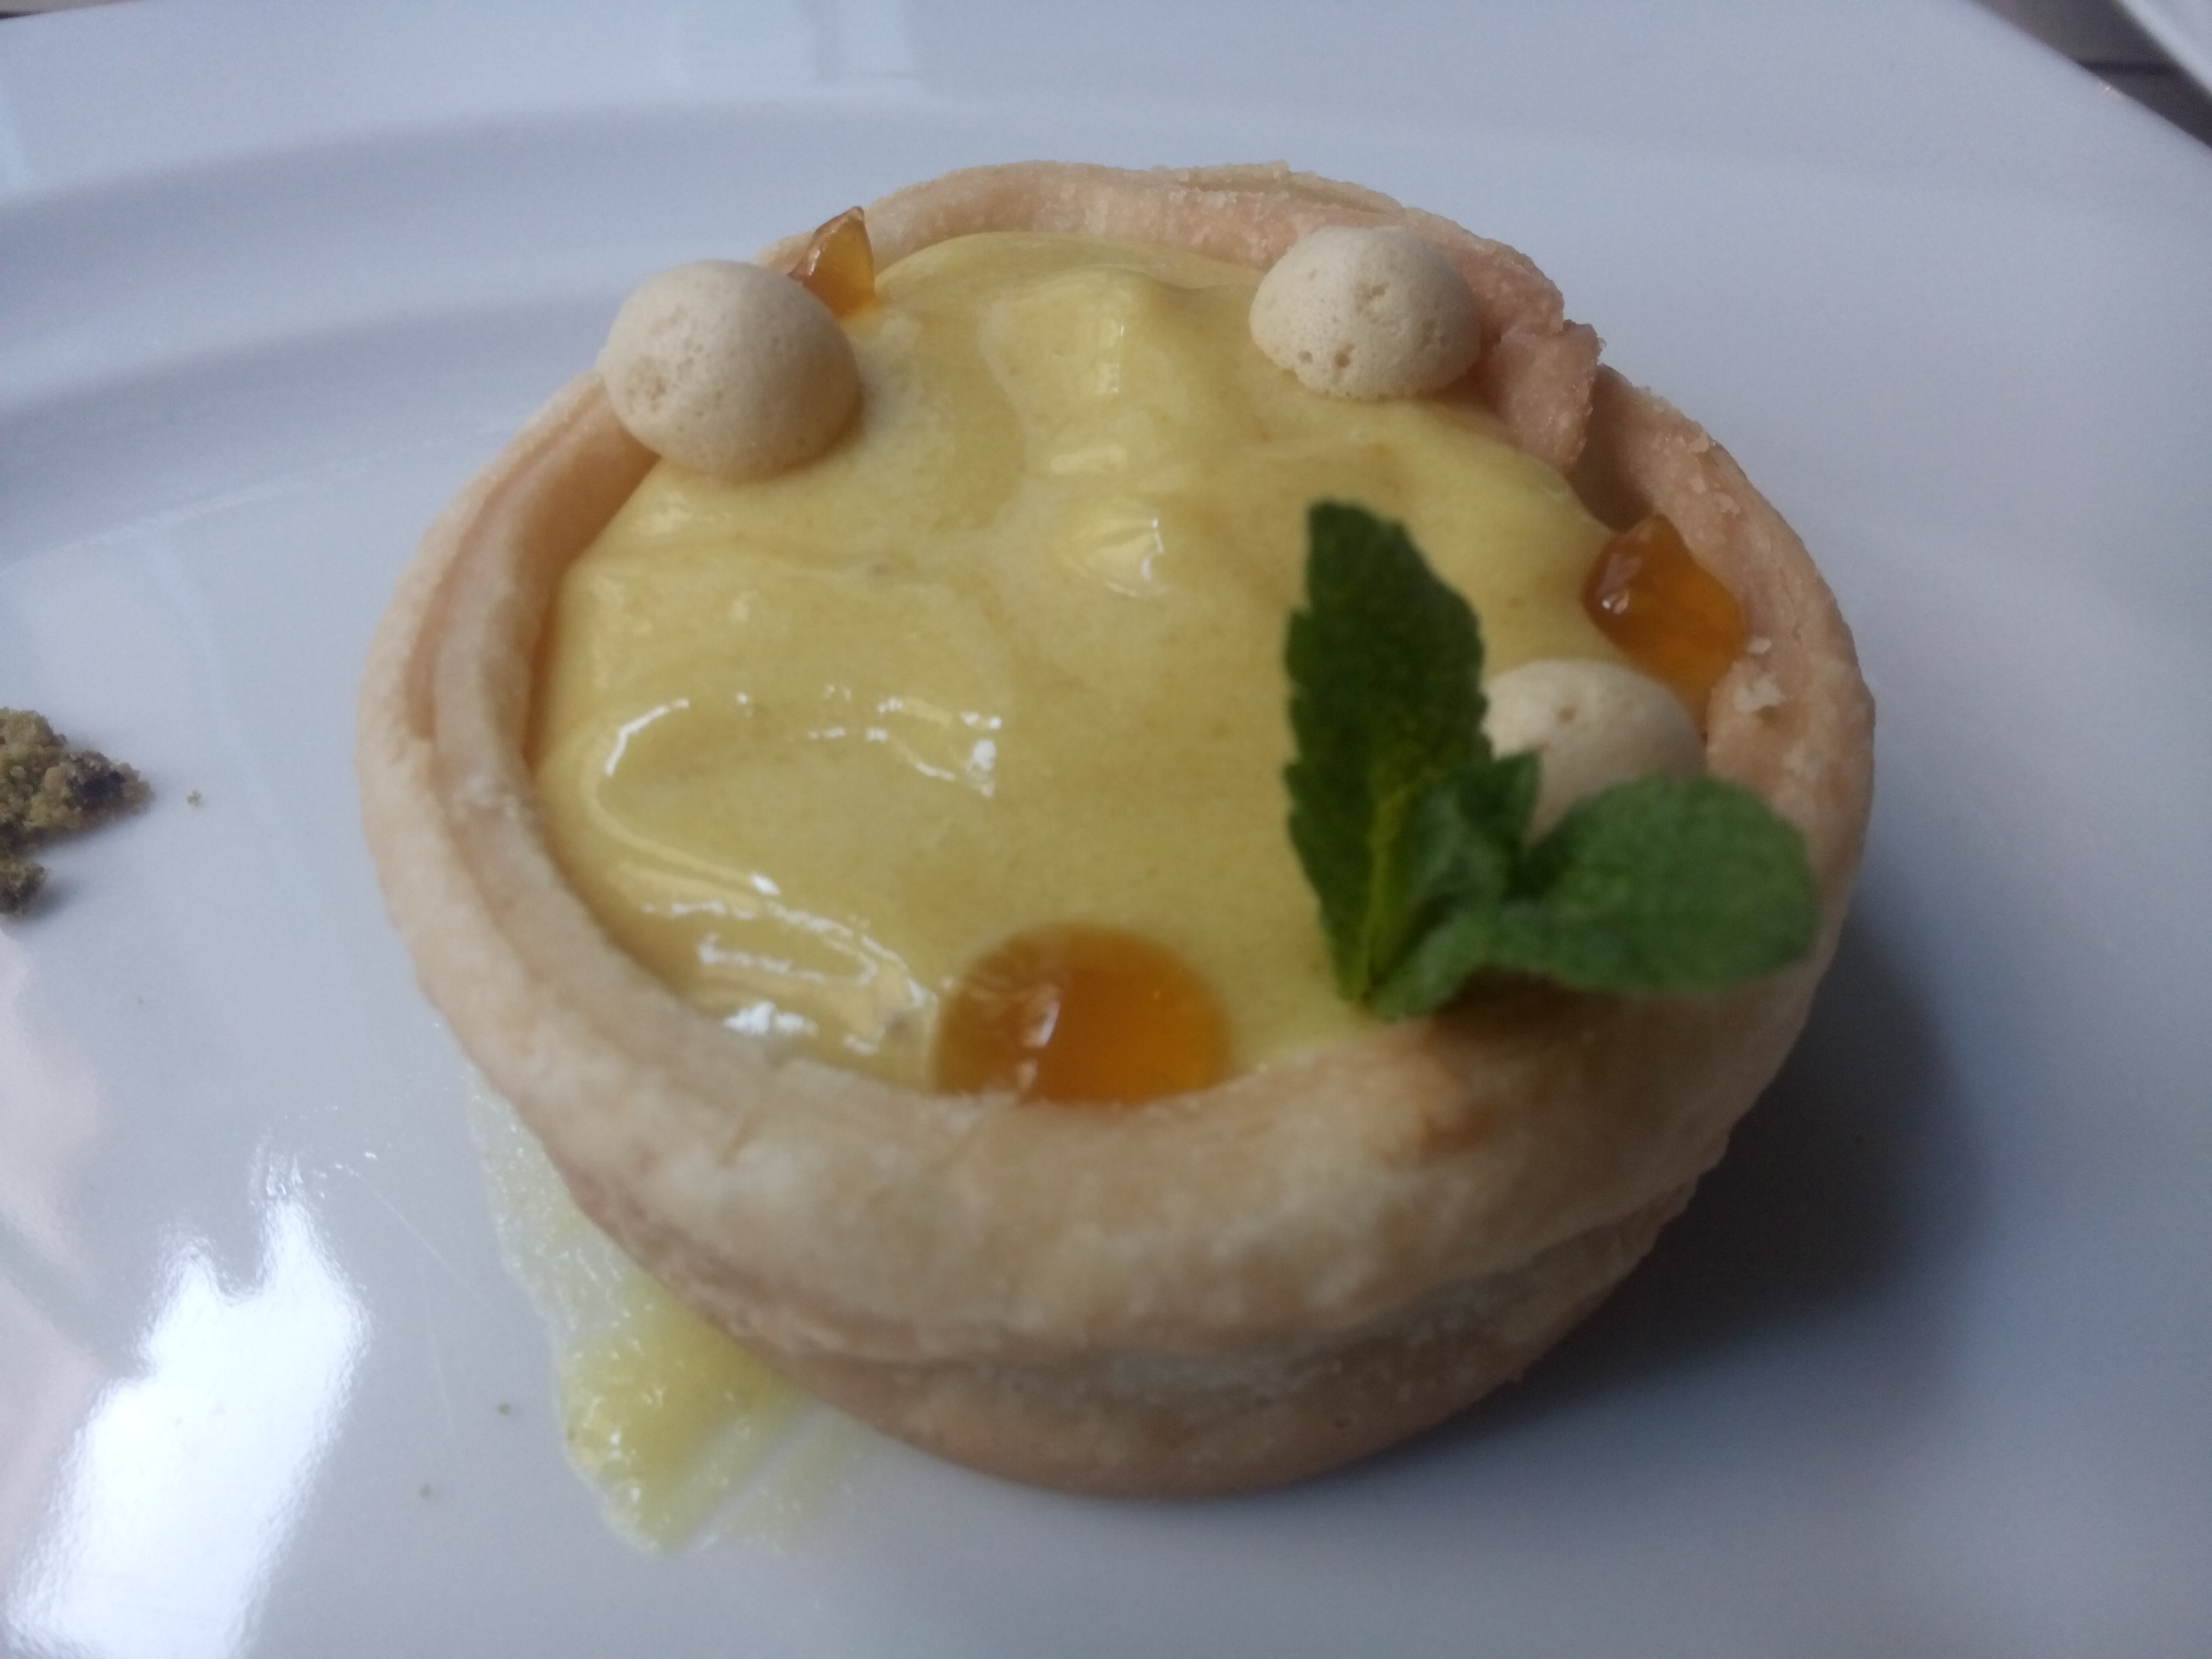 Small crusted tart with yellow cream and a spring of mint